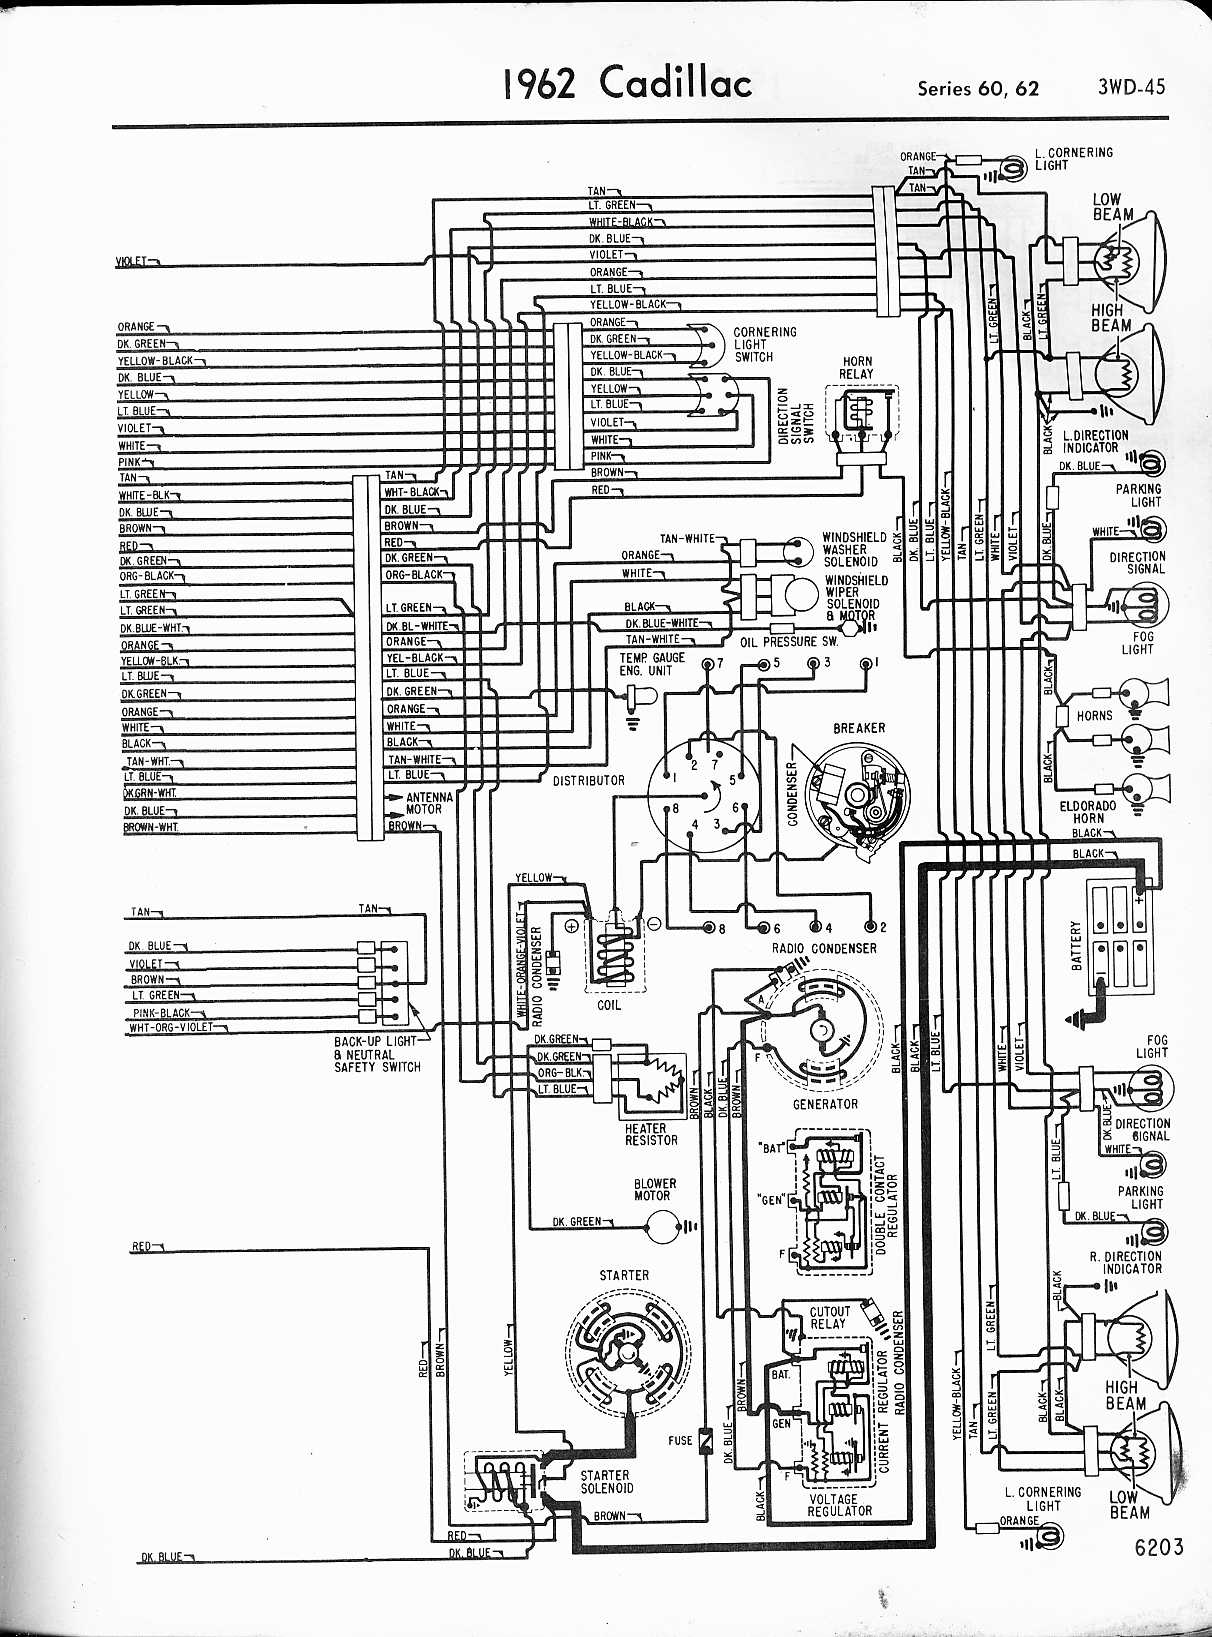 2000 Cadillac Escalade Wiring Schematic | Wiring Liry on 1989 cadillac deville radio schematic, cadillac electrical schematic, cts-v clutch schematic,